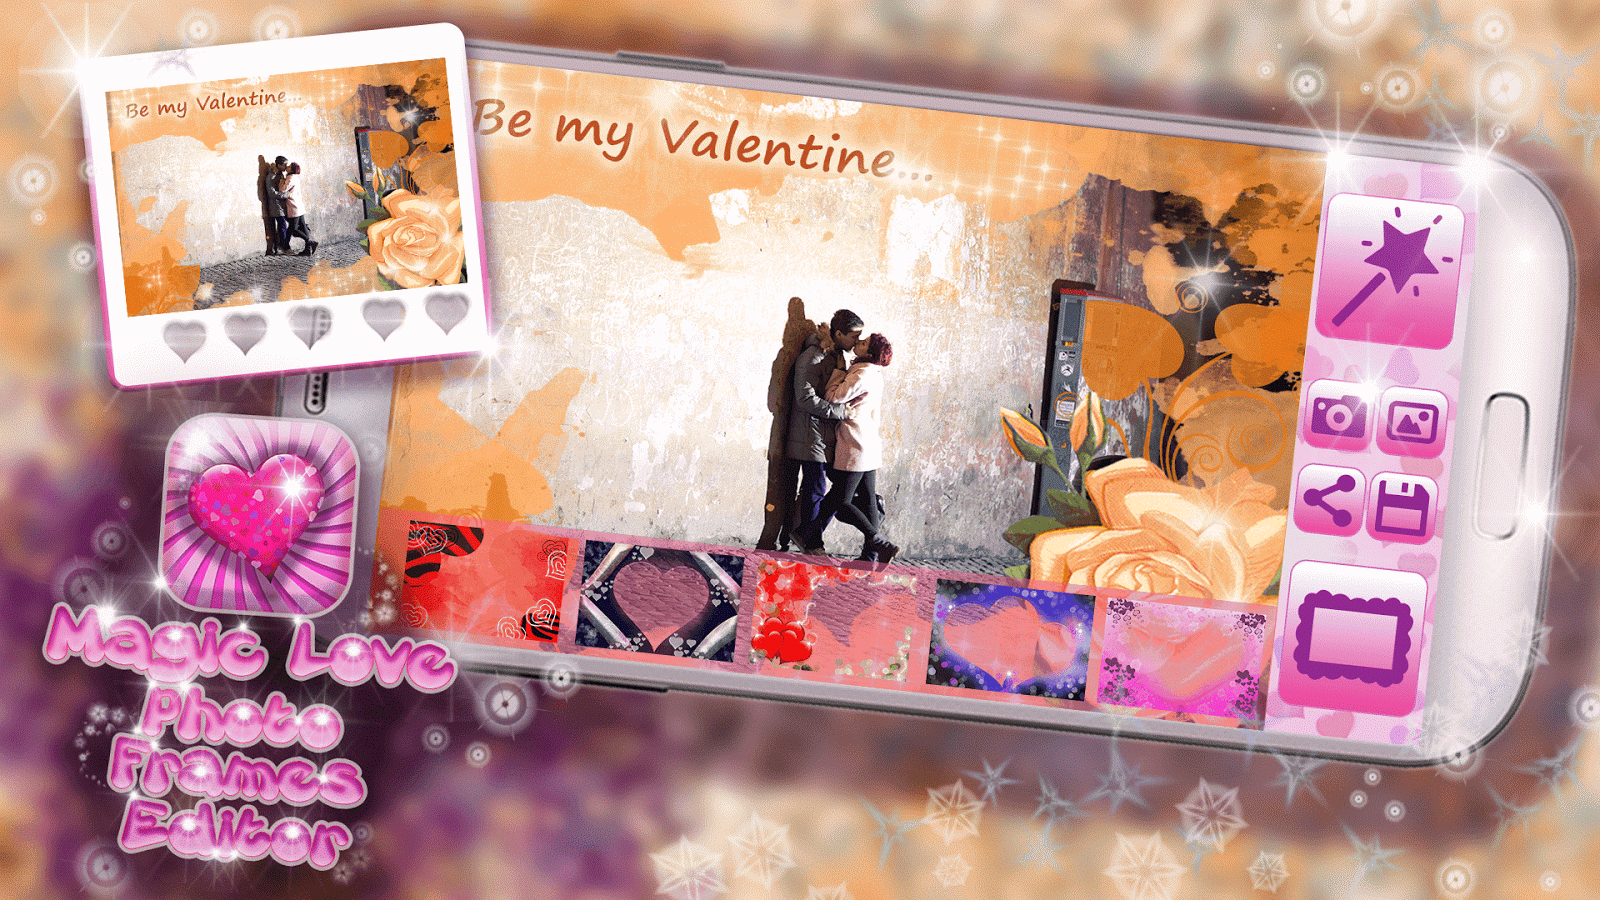 magic love photo frames editor screenshot